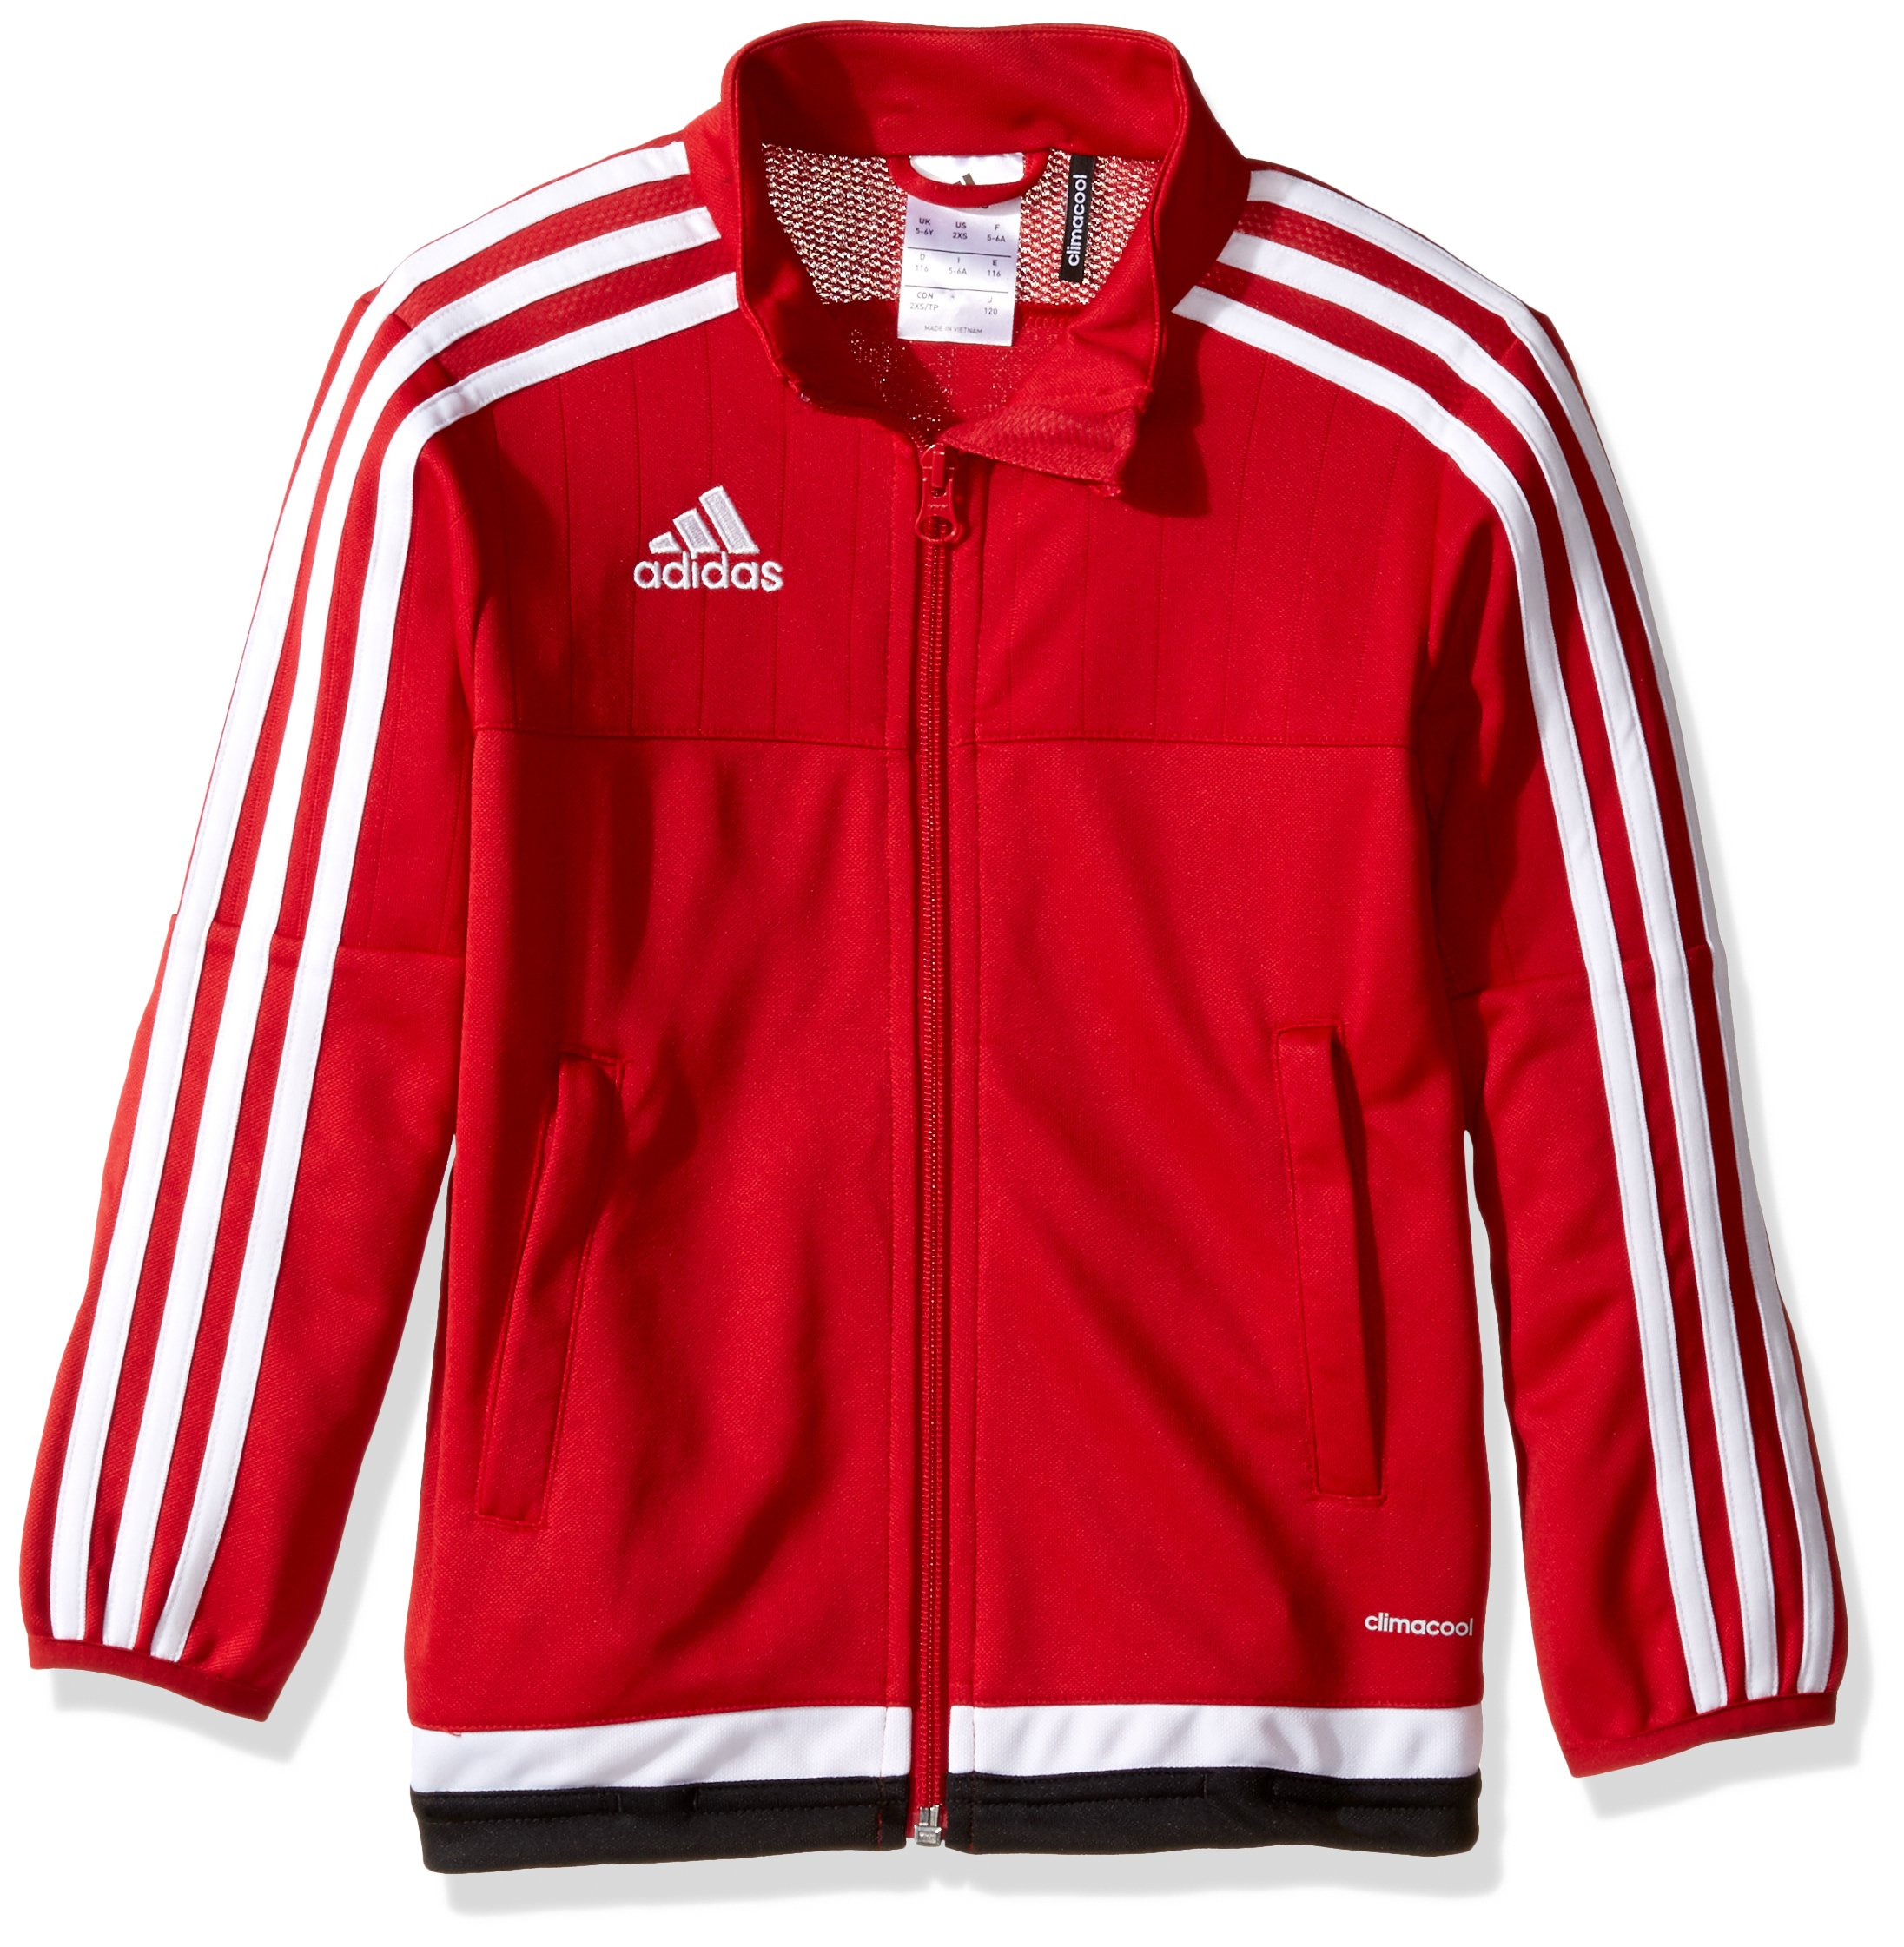 adidas Youth Soccer Tiro 15 Training Jacket, Power Red/White/Black, Large by adidas